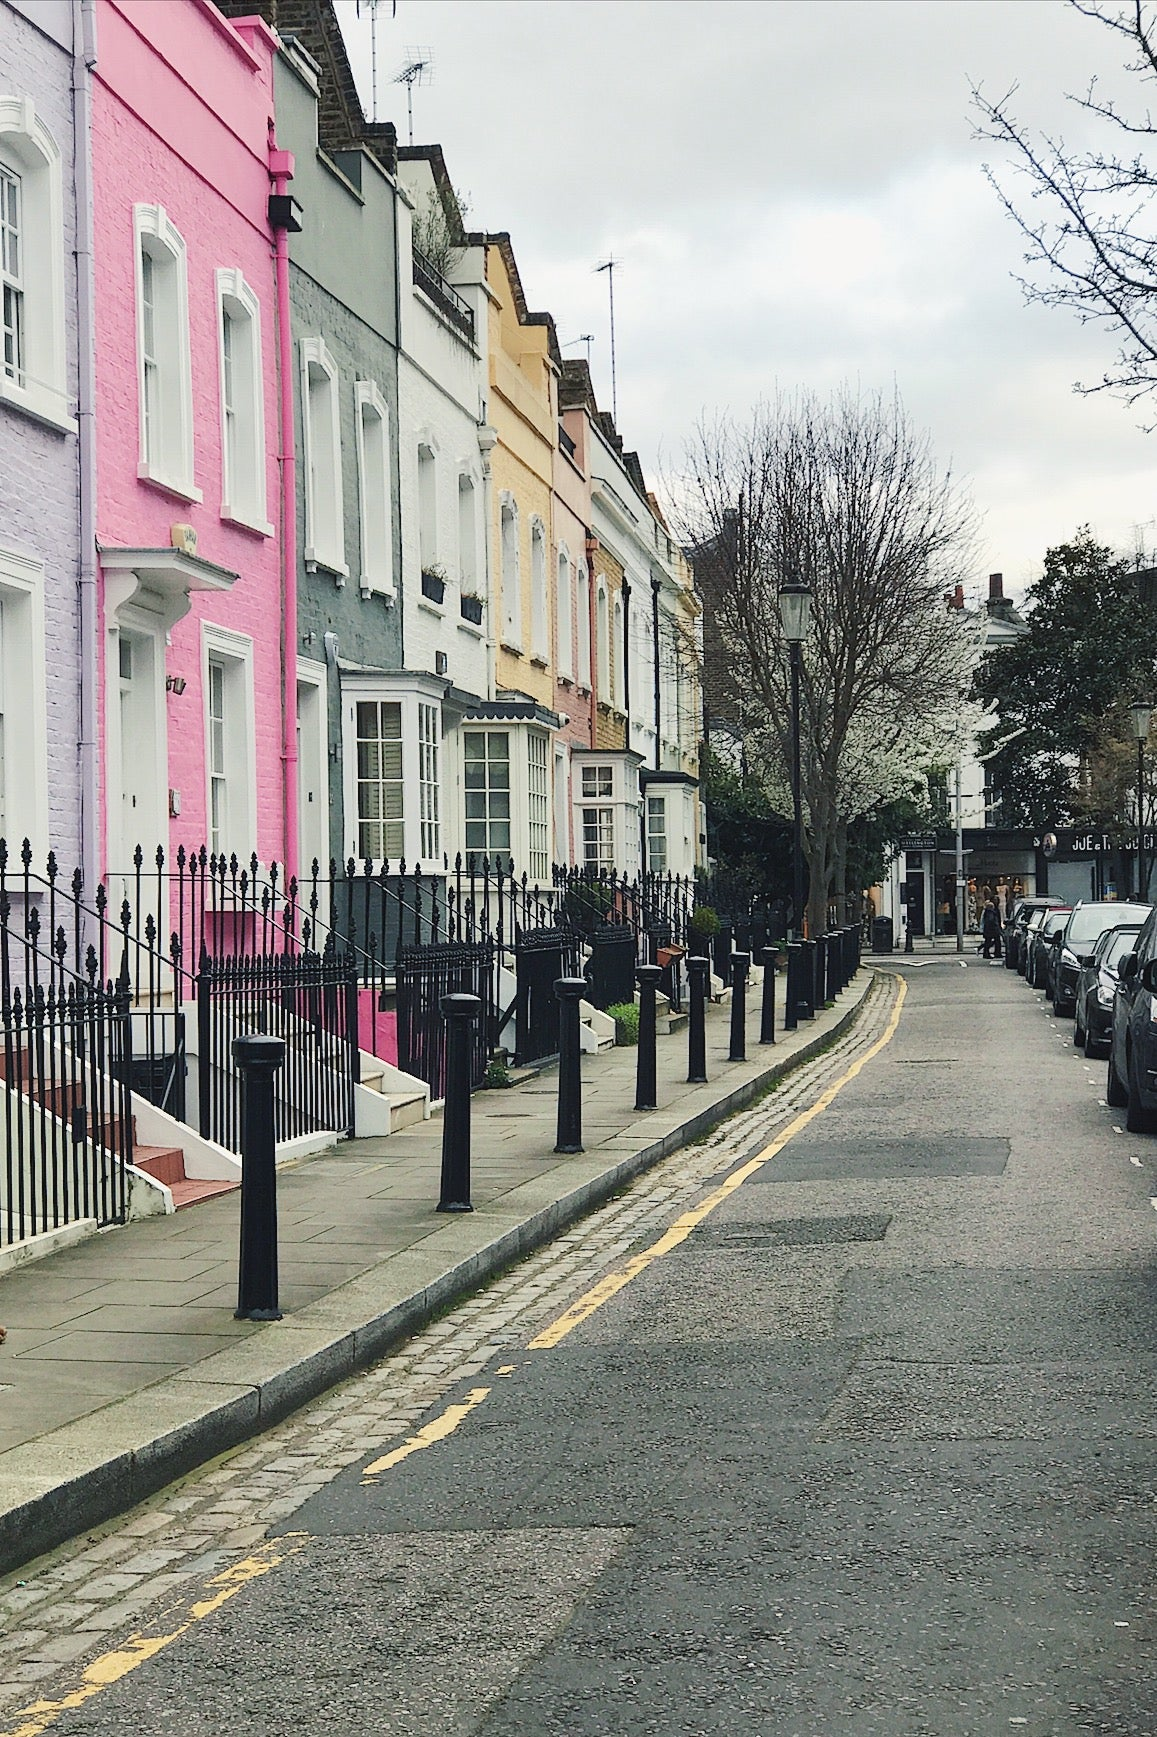 April's walk is a springtime stroll through pretty Chelsea where a fairytale bridge stands in front of one of London's most beautiful rows of houses. Sweet little cottages and old pubs line the streets and the river is only ever a few moments away.